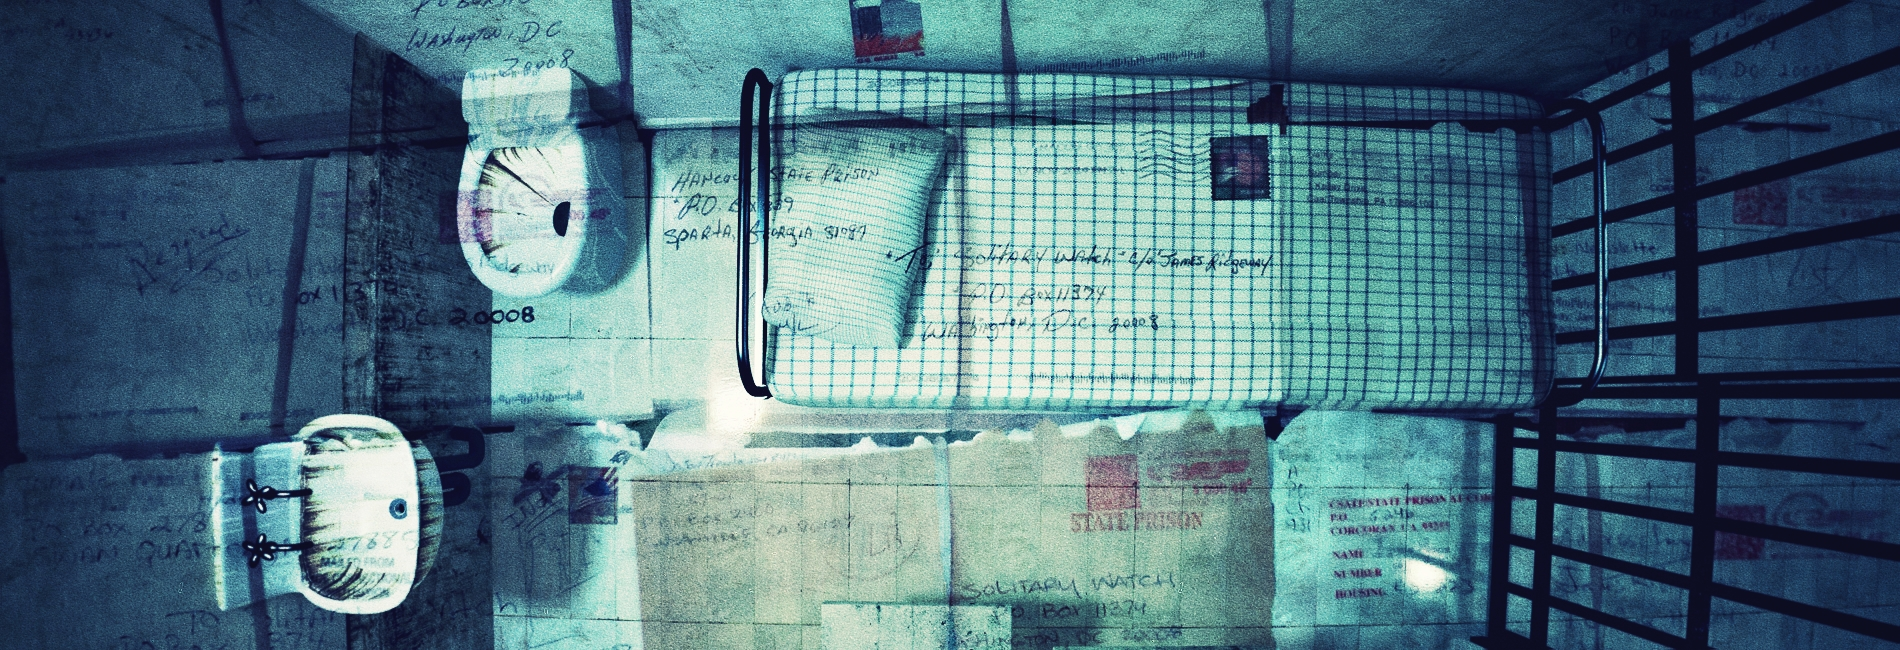 Letters Over Solitary Cell